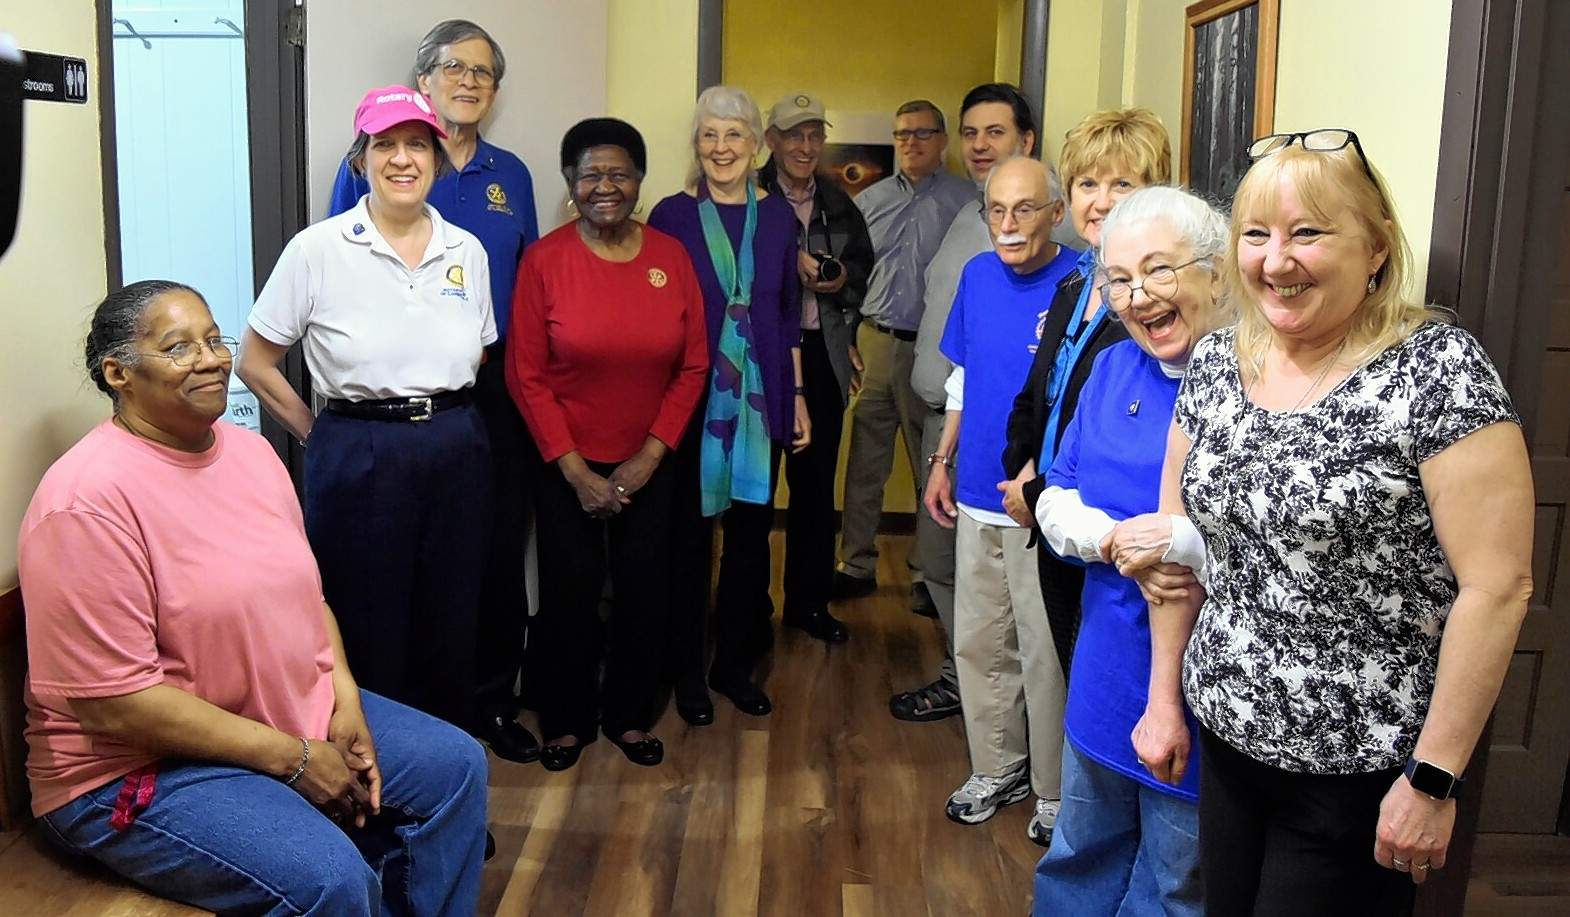 Three Carbondale-area Rotary clubs -- the Rotary Club of Carbondale, Rotary Club of Carbondale-Breakfast, and Rotary Club of Jackson Williamson Sunset -- recently teamed up to help replace flooring and trim on the second floor of the Good Samaritan House in Carbondale. Niemann's American Flooring donated materials and labor, and Rotary members contributed a combined 80 volunteer hours to the effort. They held a ribbon cutting Friday to mark completion.